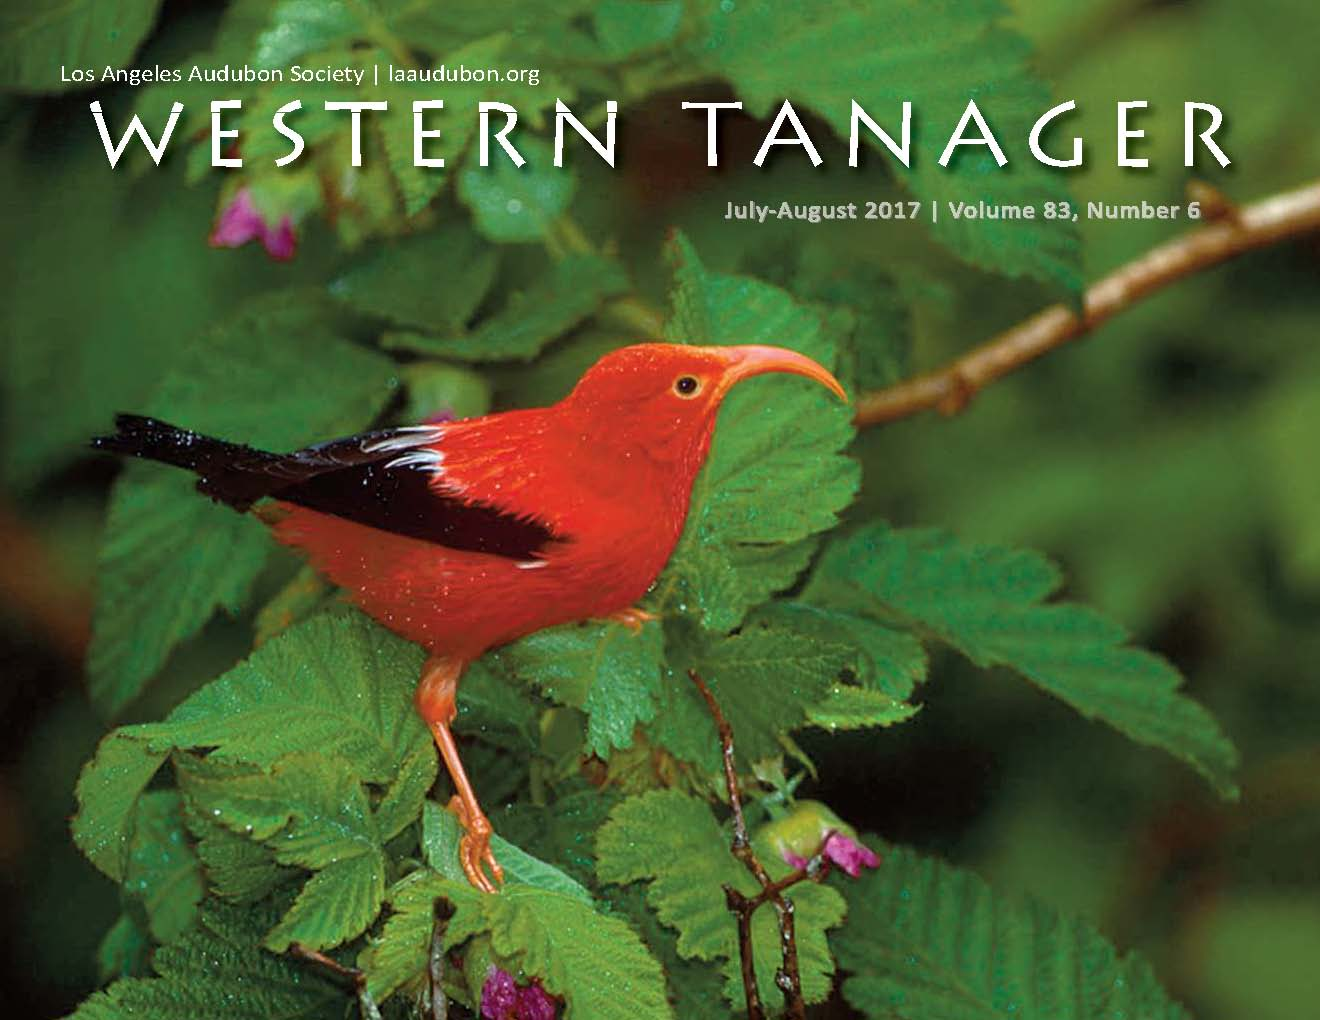 "ON THE COVER  'I'iwi | Hakalau Forest Wildlife Refuge, Photo by Jack Jeffrey  Found nowhere else in the world, the spectacular scarlet‐feathered I'iwi  (Drepanis coccinea)  is the last of the sickle‐billed Hawaiian honeycreepers. Before the appearance of humans in Hawaii, more than fifty different honeycreeper species were known to have existed. Today, only 18 species remain, most of these are endangered or threatened. I'iwi feathers were once collected by early Hawaiian bird catchers or ""kia manu"", and used for the feathered cloaks of Hawaiian Royalty. I'iwi are still fairly abundant in the remaining high elevation native koa‐ohia forests of Hawaii Island and Maui, but rare on the other major islands. The long down‐curved bill of the I'iwi is a perfect match for the shape of tubular flowers of many native plants, making I'iwi important pollinators of these and other native plants. To see an I'iwi, or to hear its loud ""rusty hinge"" call is an extraordinary experience and one that can only be had in a Hawaiian rainforest."